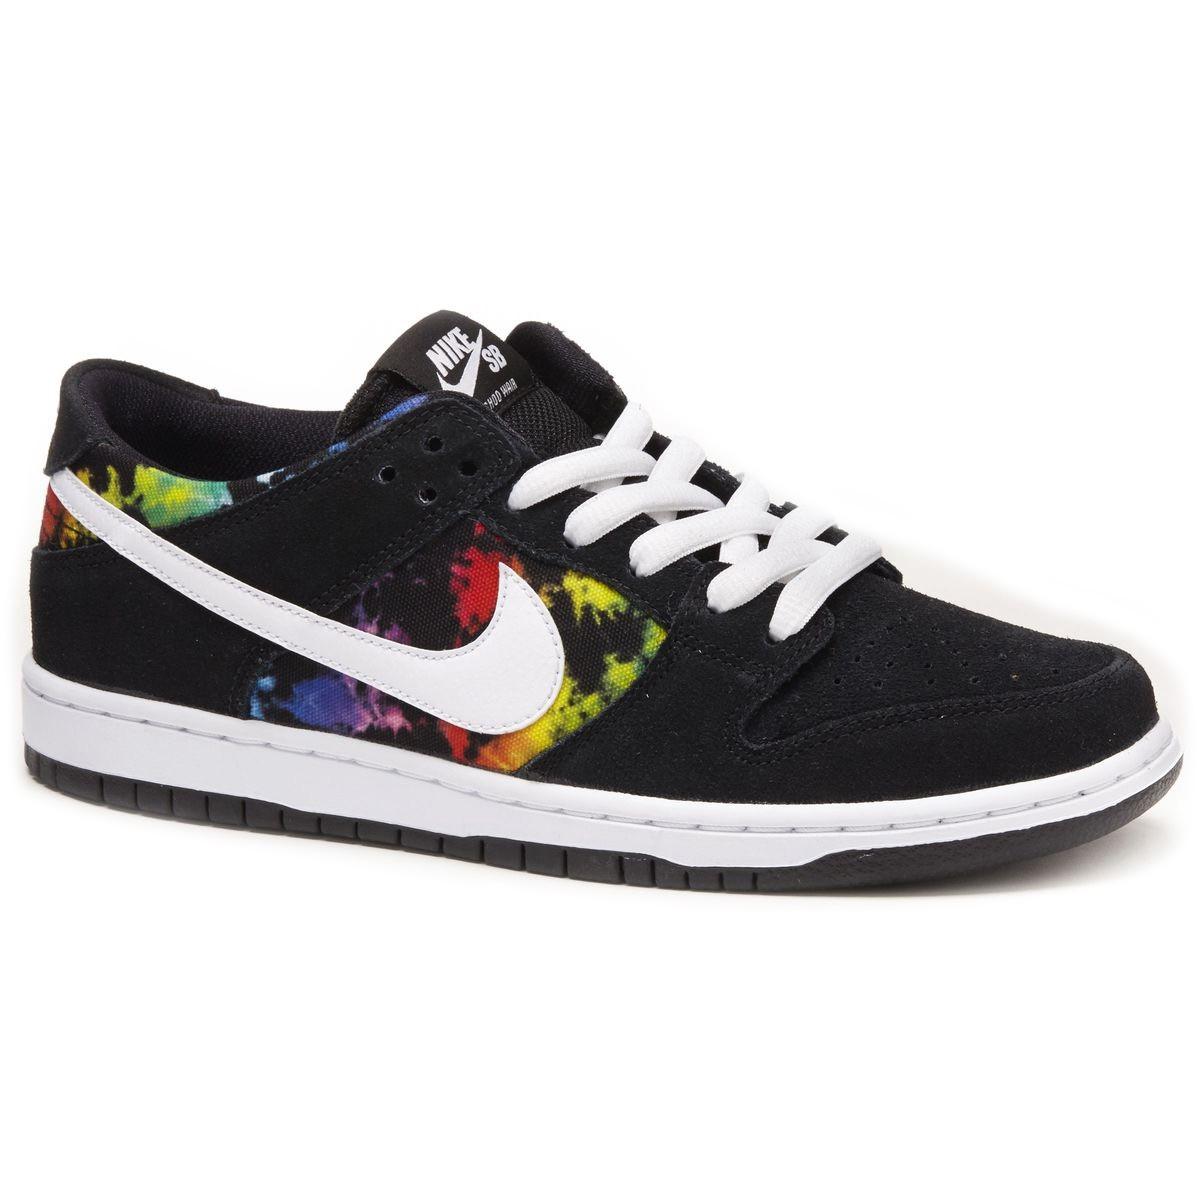 ca2eb3ea7450 Nike Dunk Low Pro IW Shoes